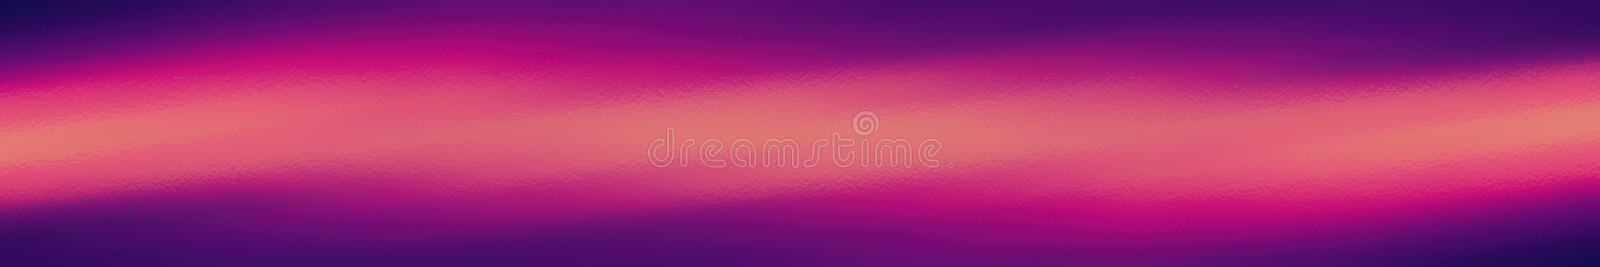 Purple and orange web site header or footer background. Abstract design template royalty free illustration